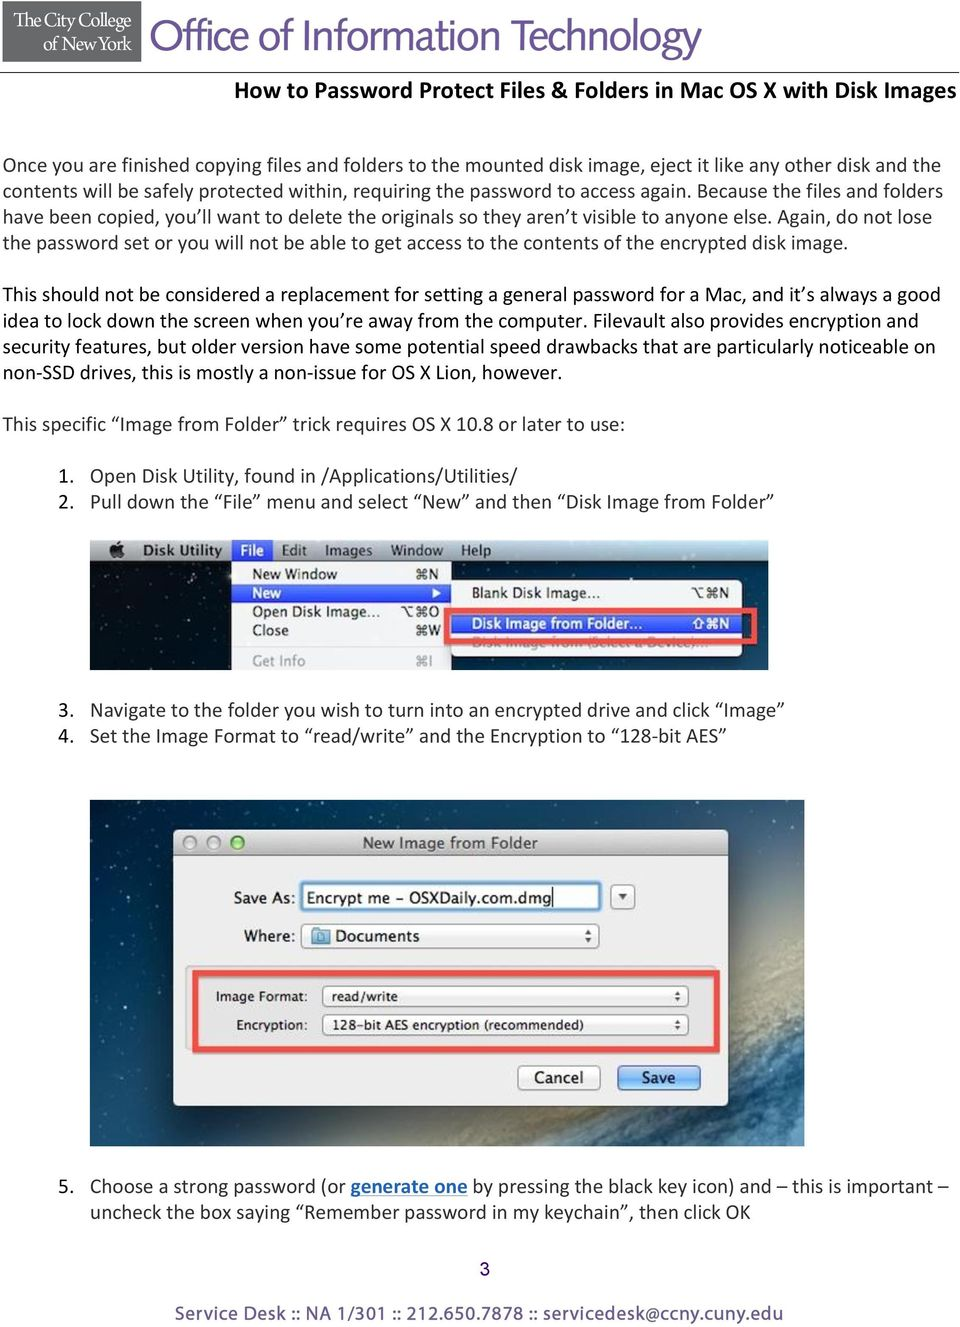 Again, do not lose the password set or you will not be able to get access to the contents of the encrypted disk image.